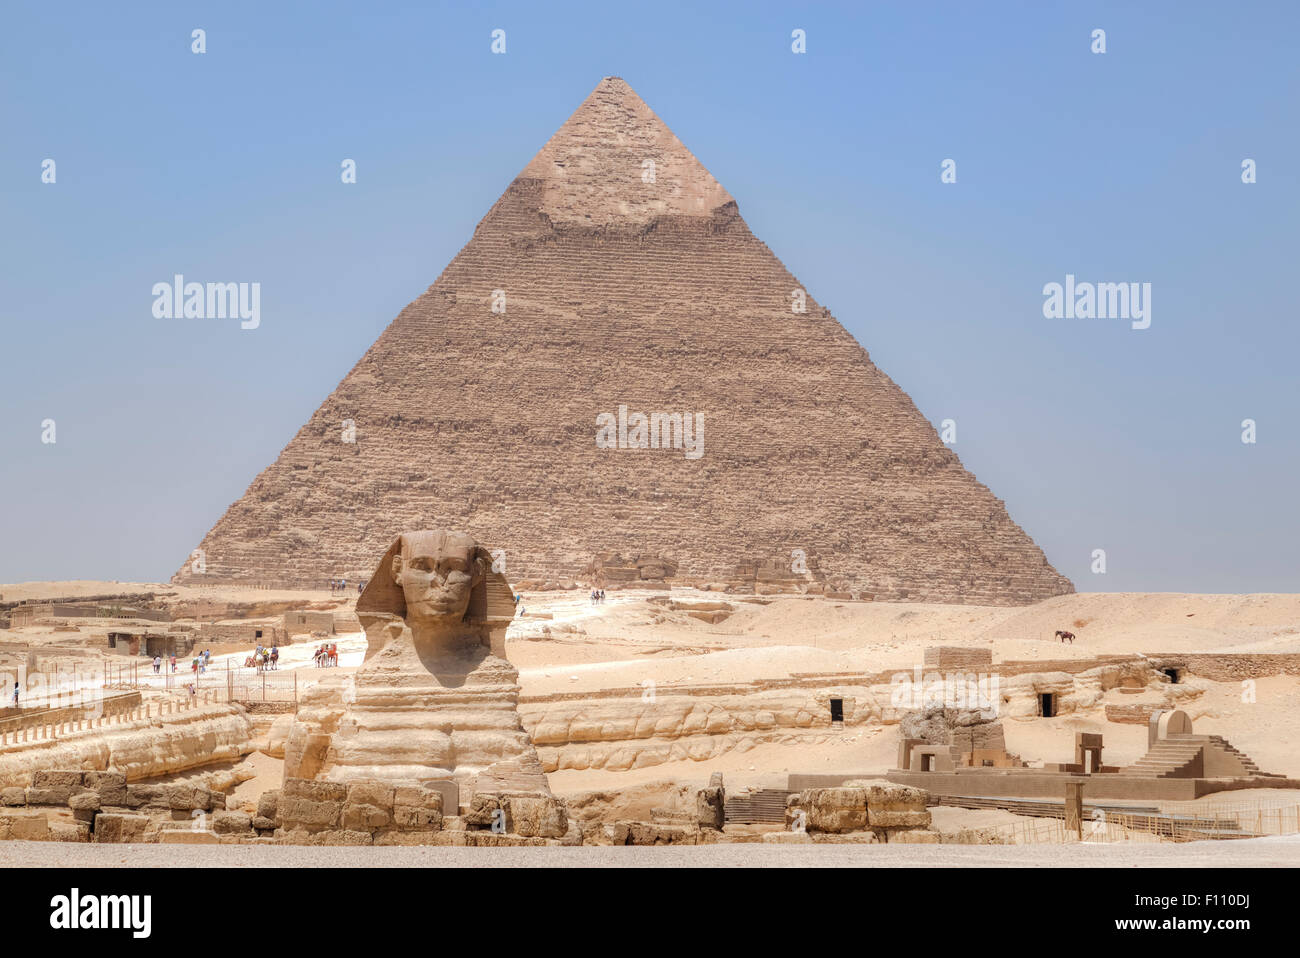 Great Sphinx of Giza, Giza, Cairo, Egypt, Africa - Stock Image